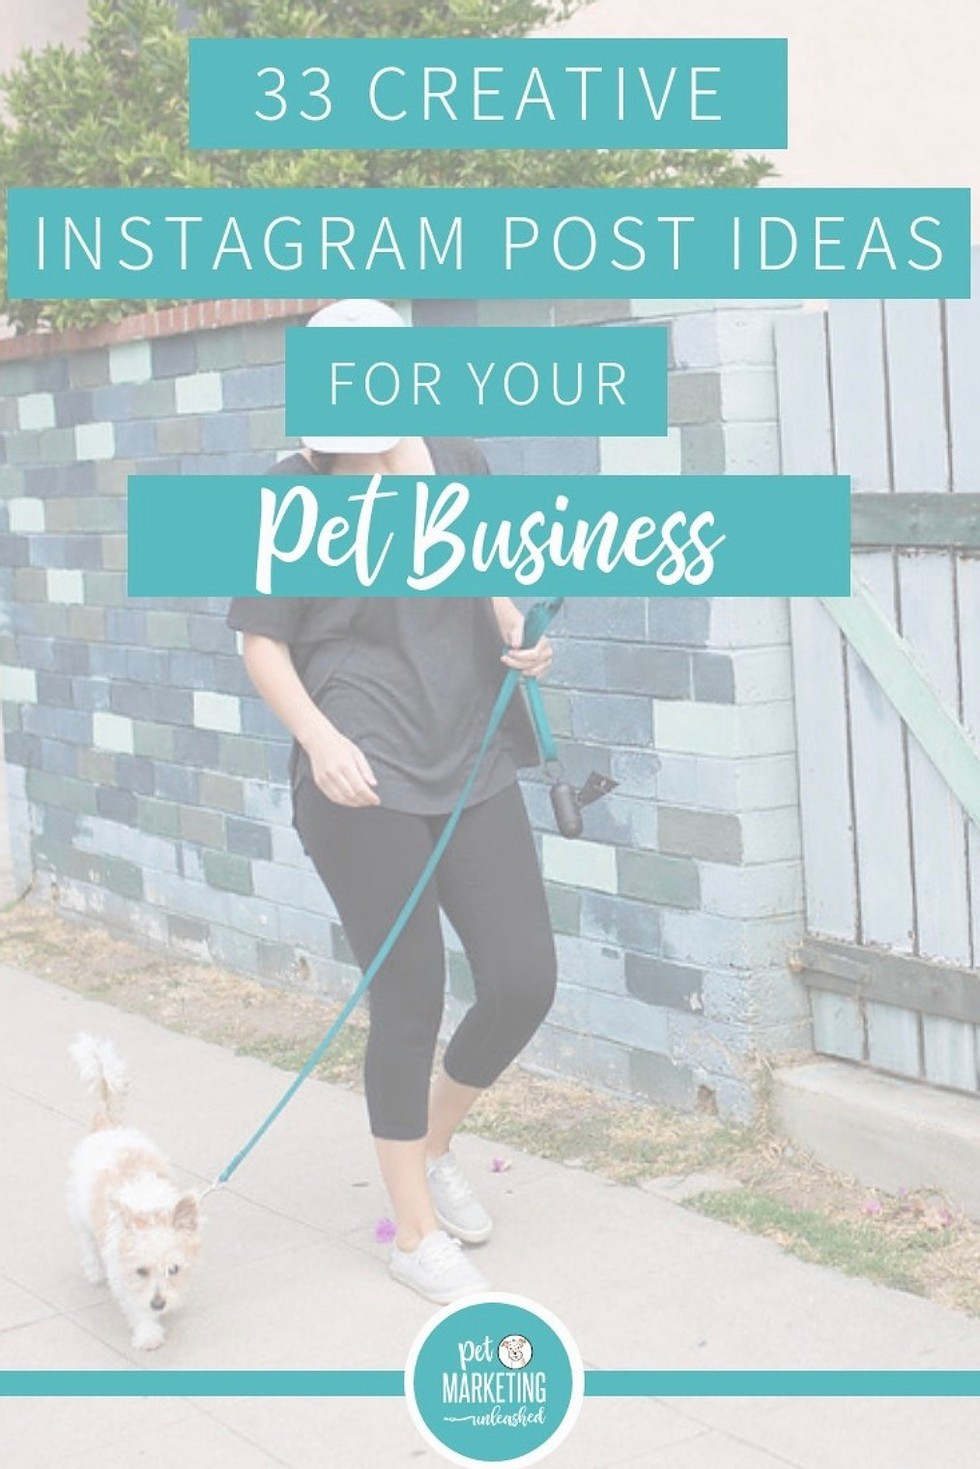 33 Creative Instagram Post Ideas for Your Pet Business | Dog walkers, pet sitters, pet photographers, groomers, veterinarians, and dog trainers | Pet Marketing Unleashed